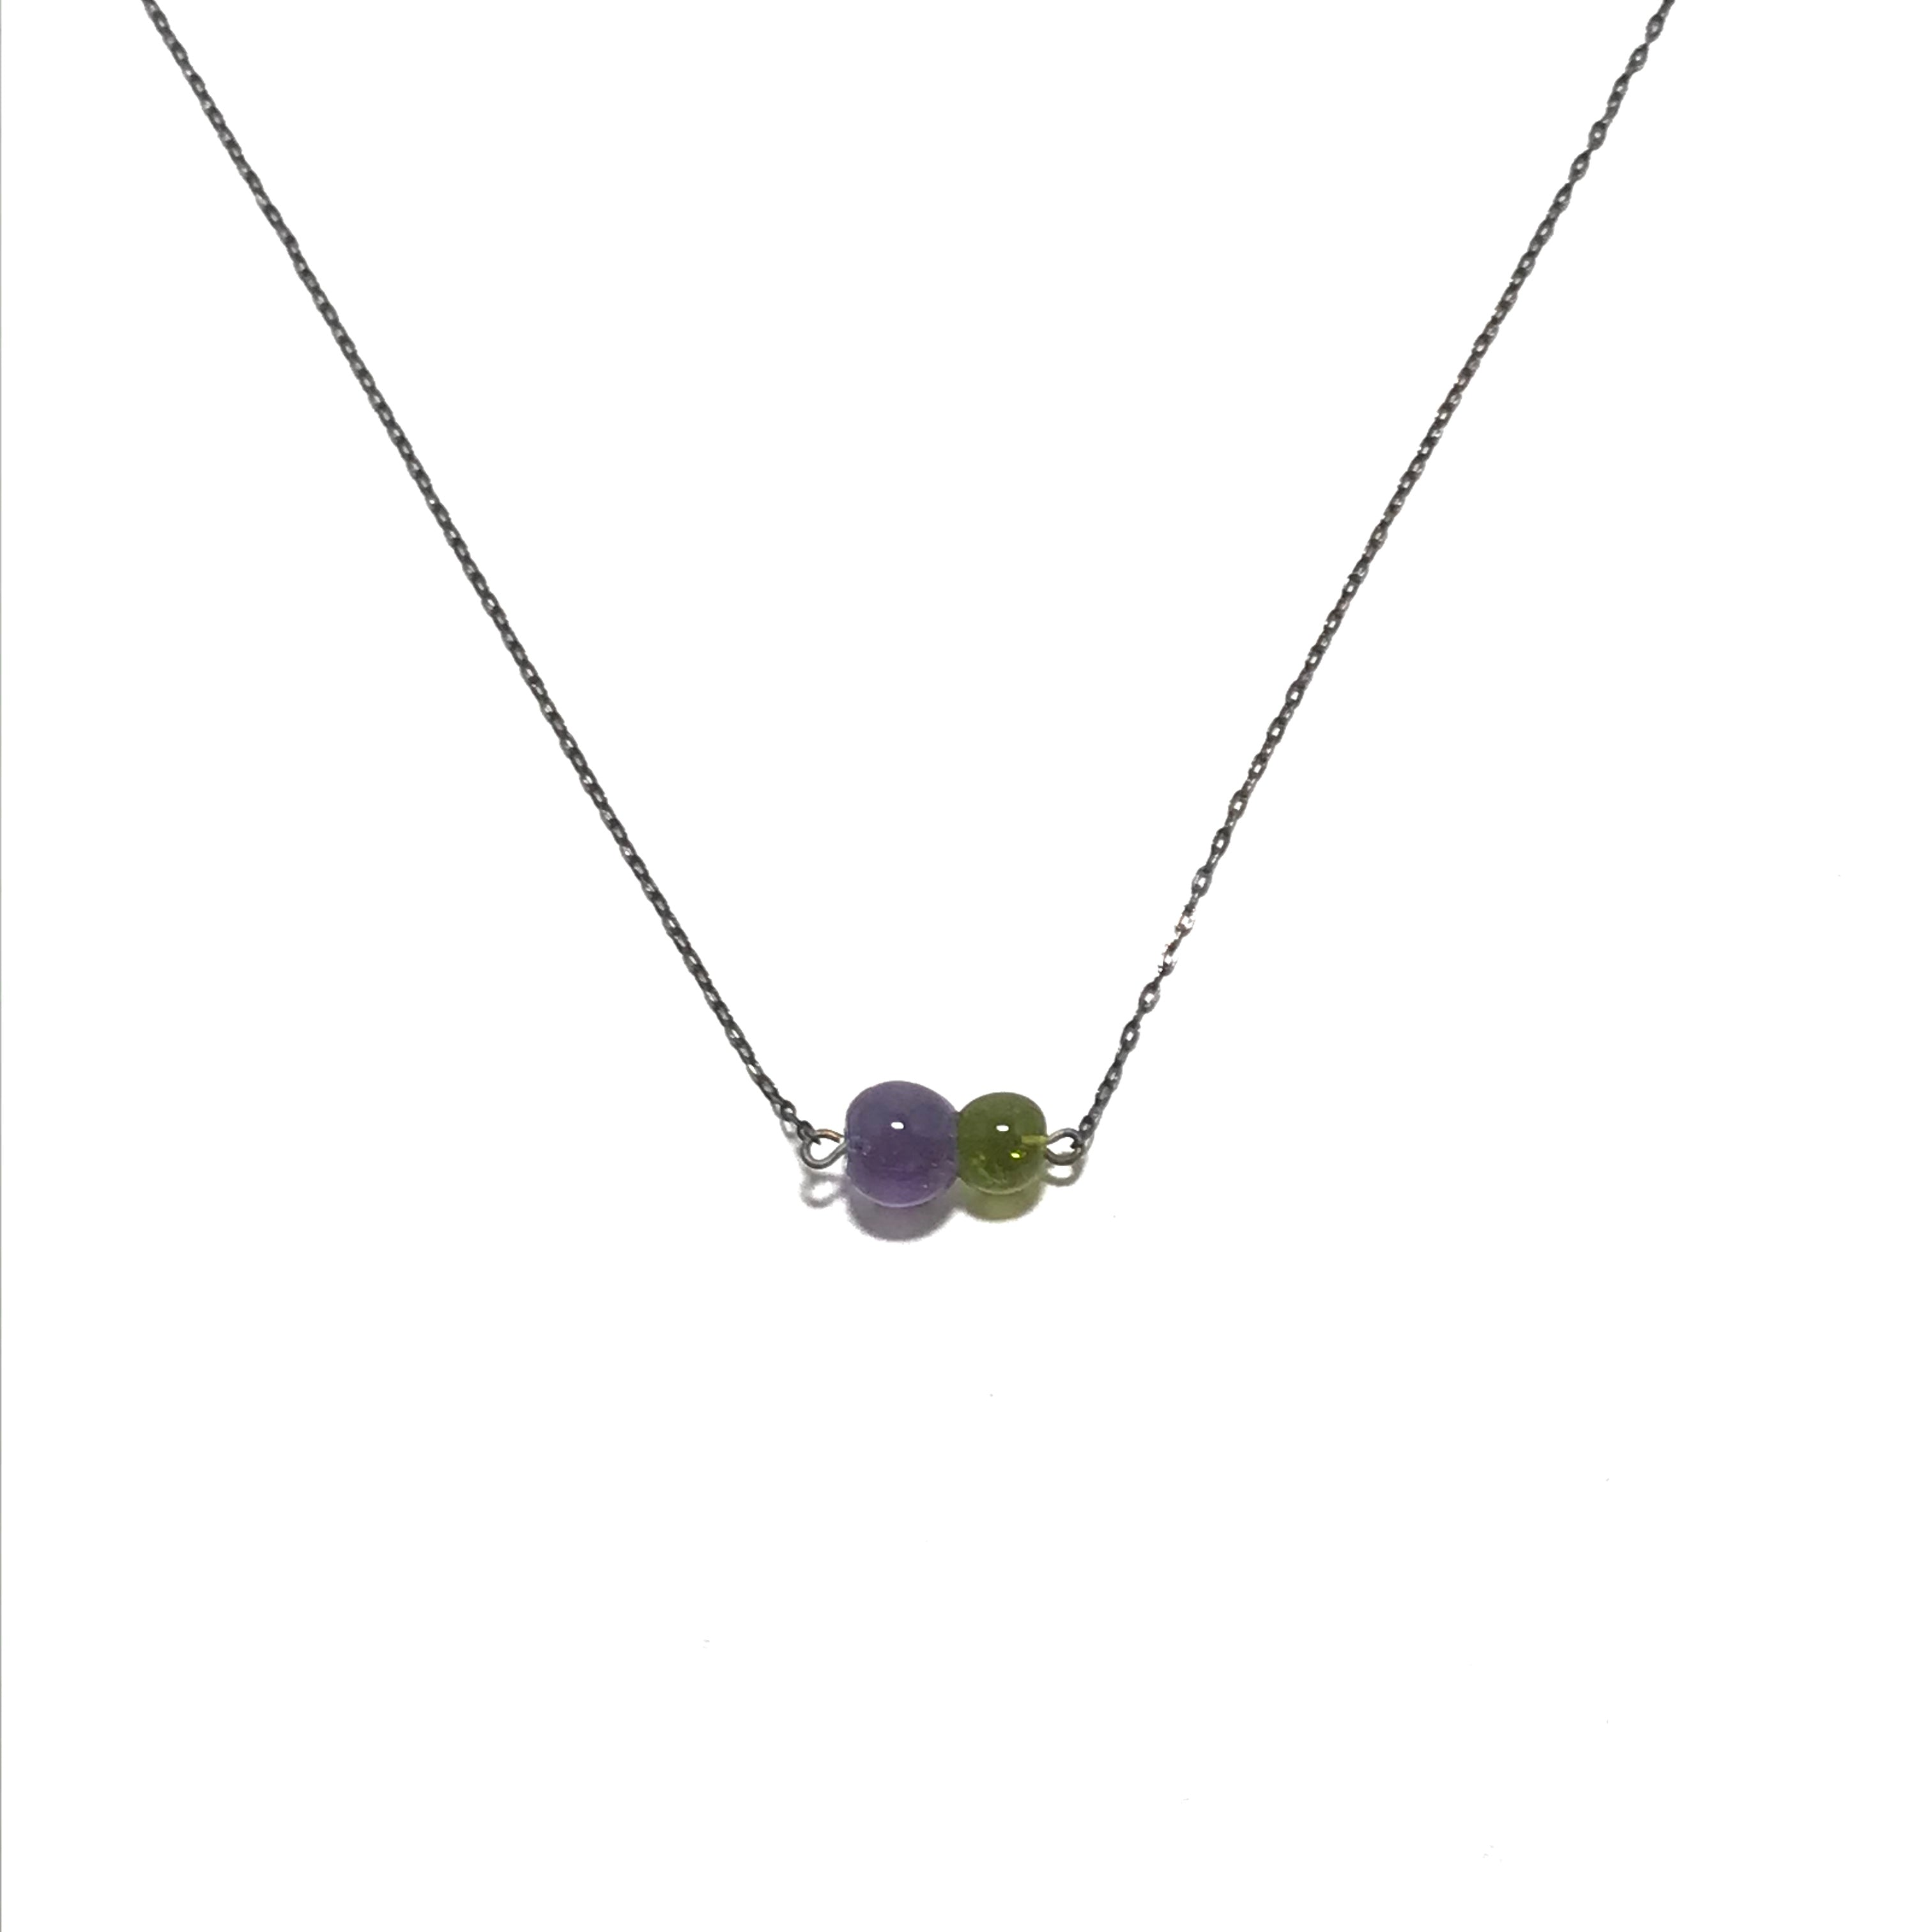 Krista Bermeo Horizontal Globe Necklace in Lavender and Lime